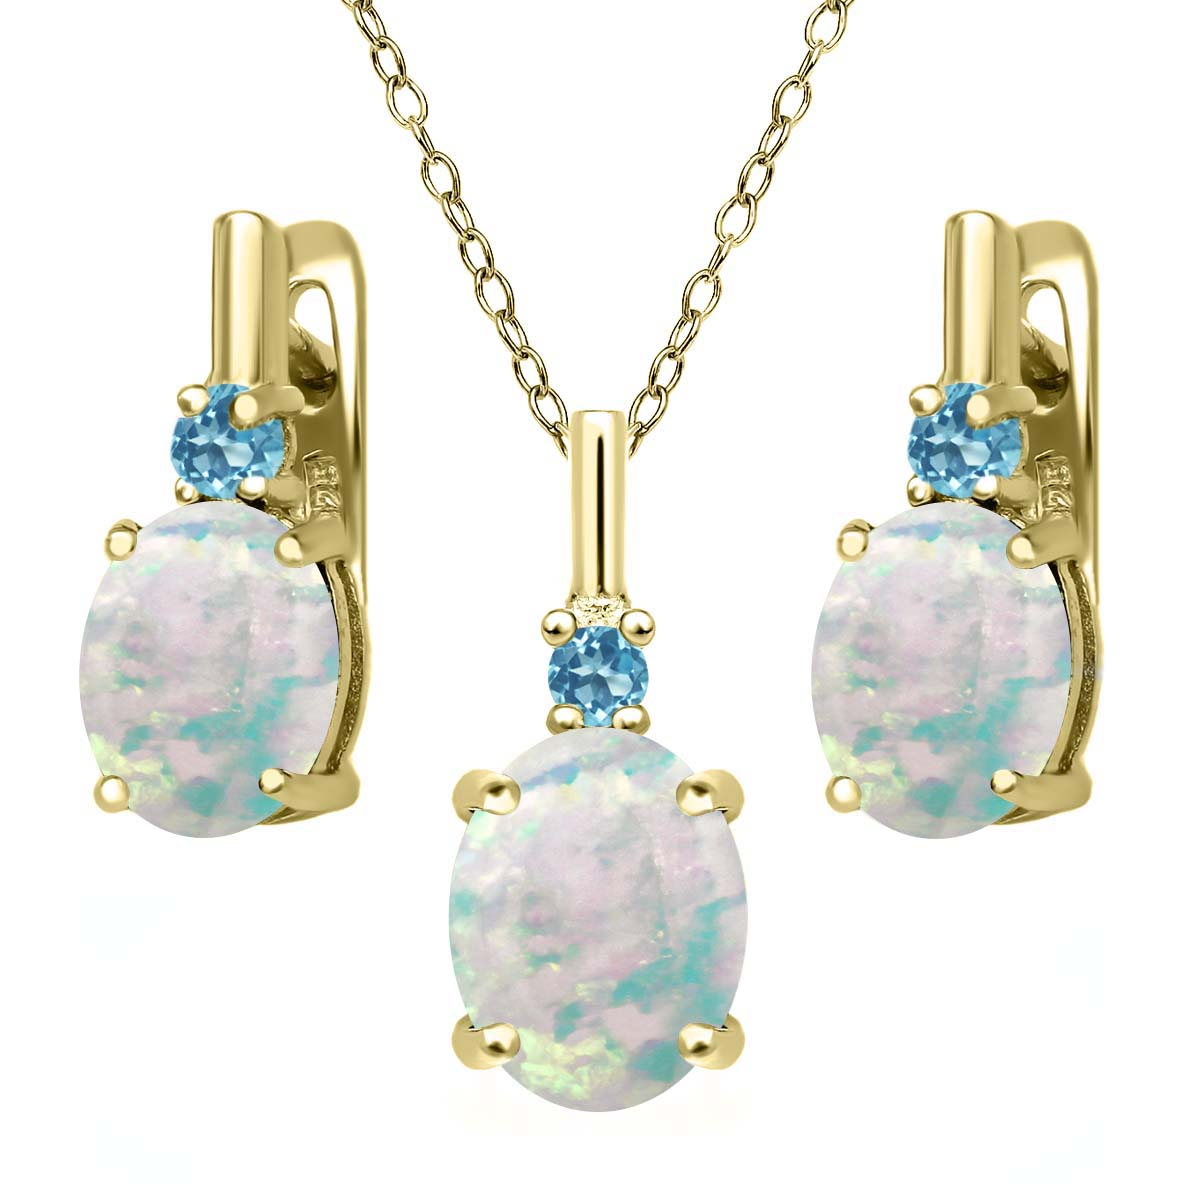 4.88ct Simulated Opal Simulated Topaz 18K Yellow Gold Plated Silver Jewelry Set by